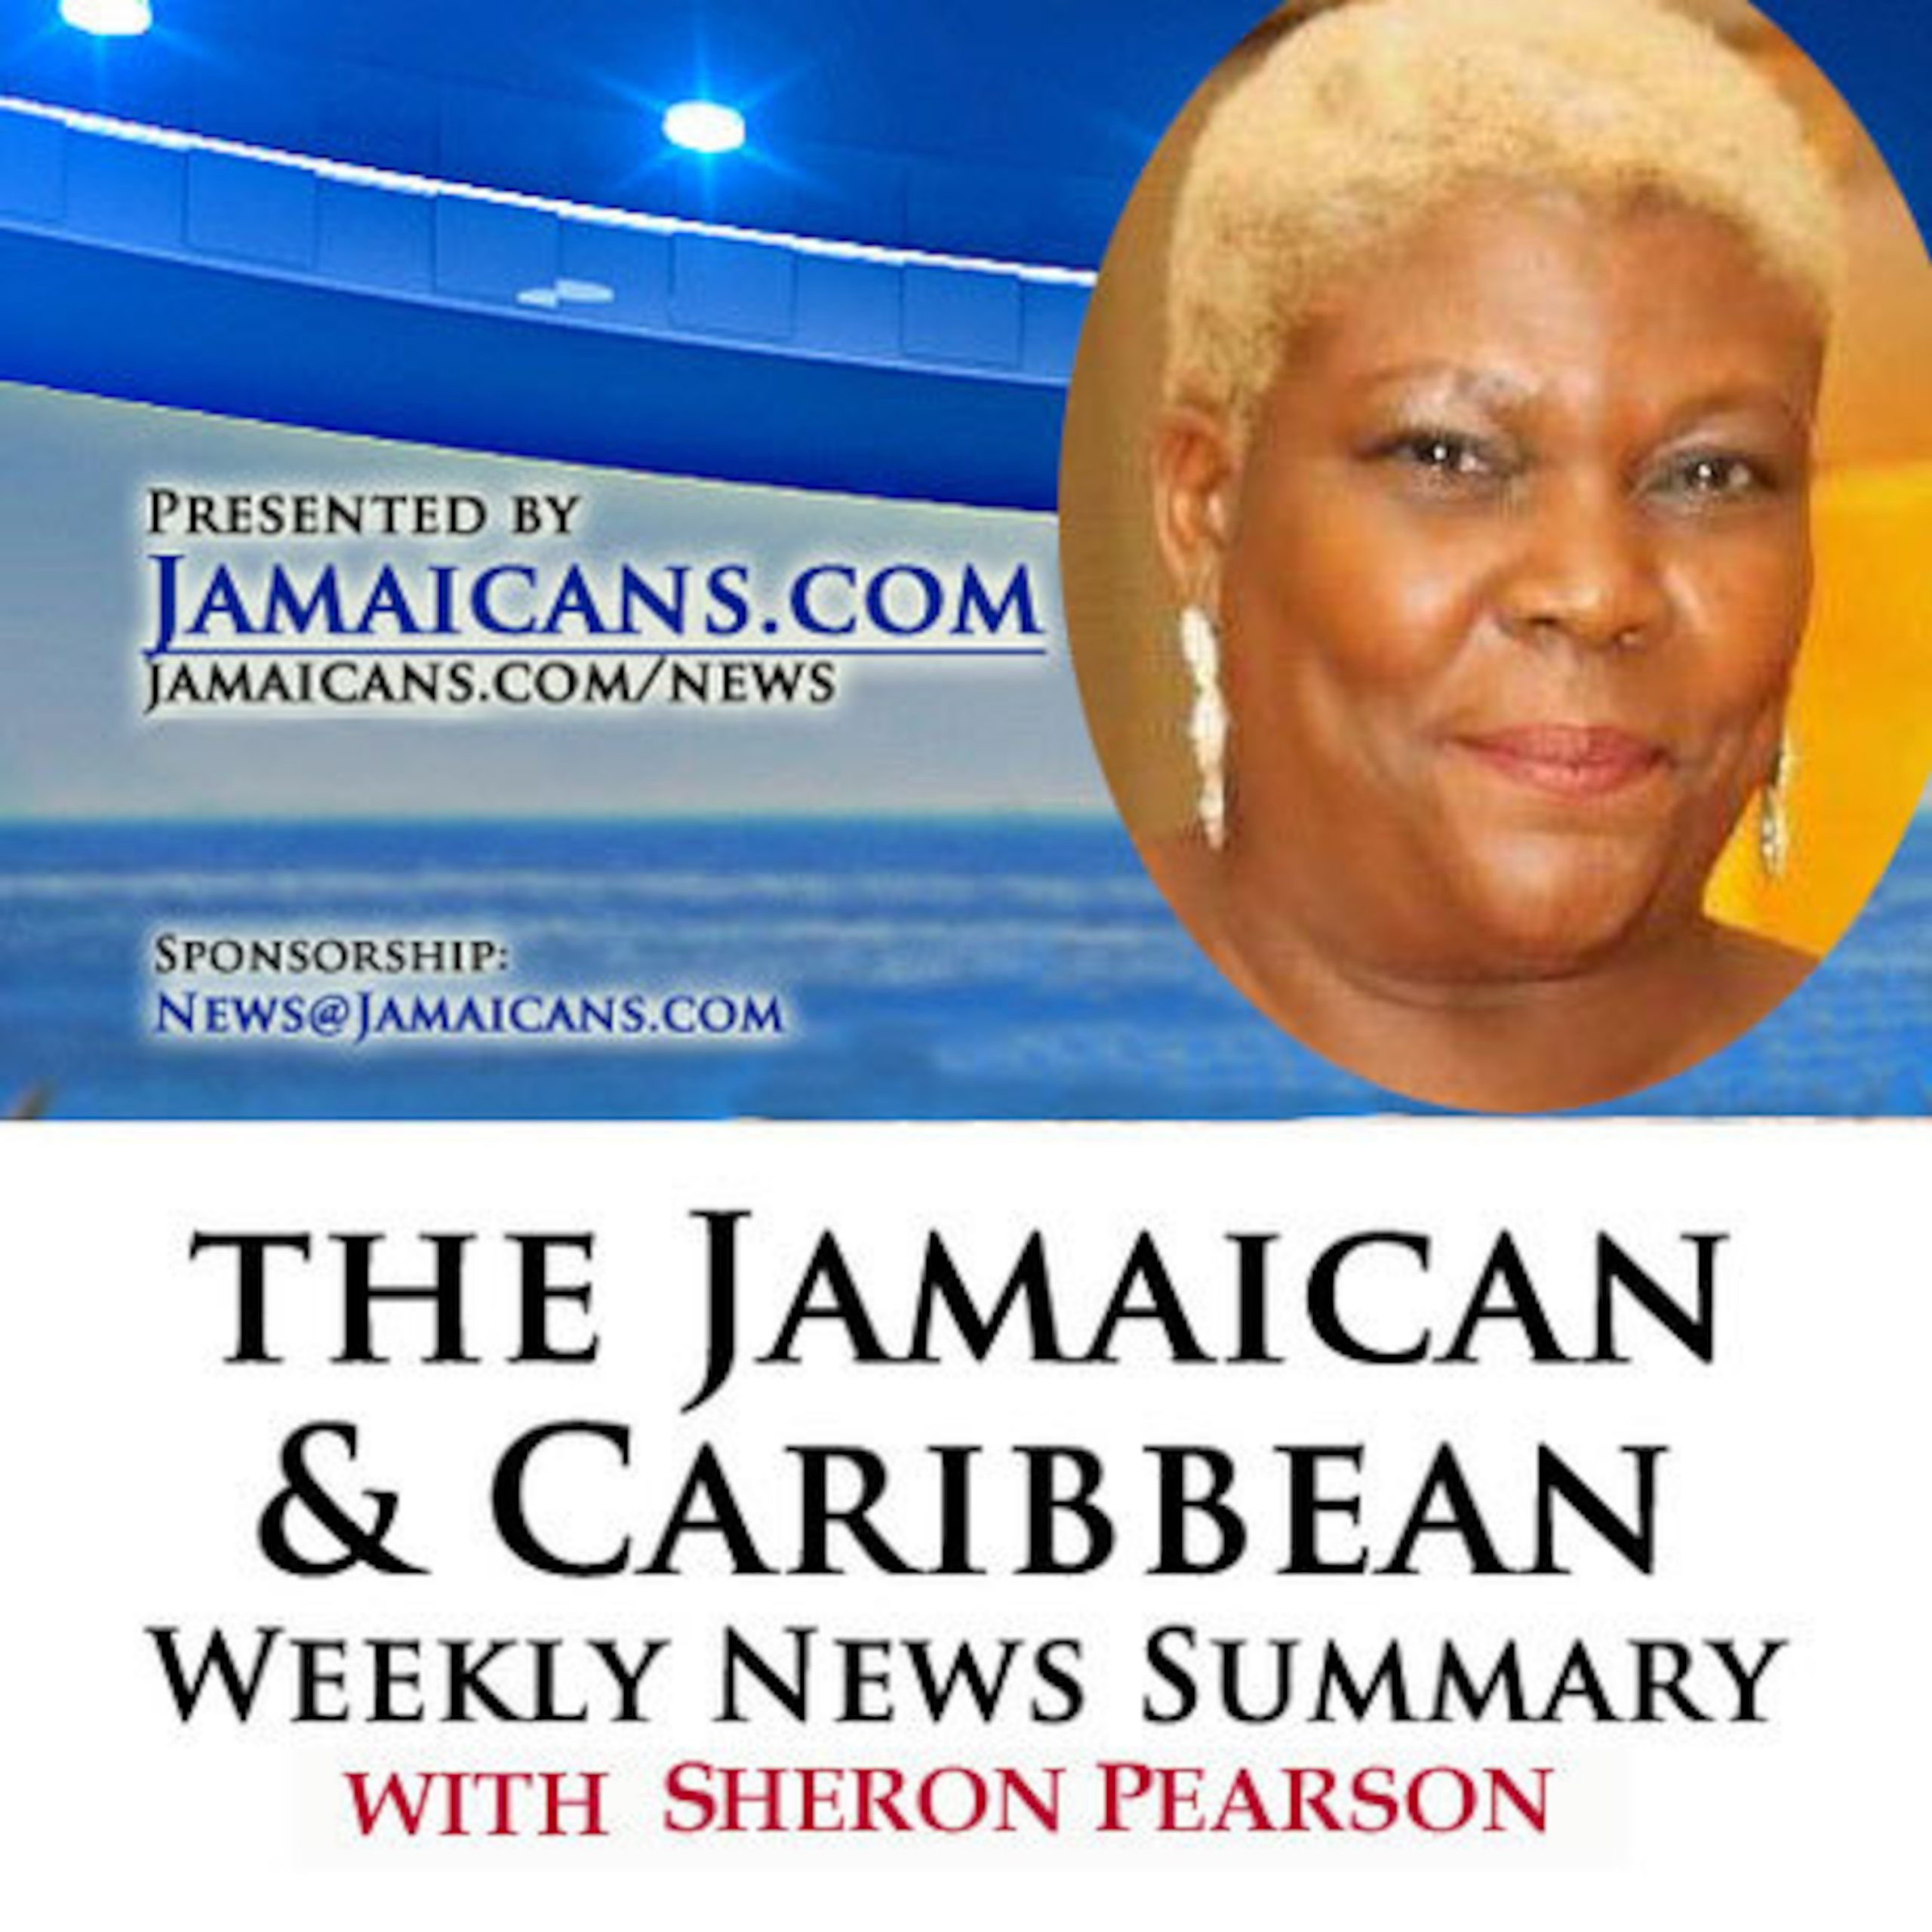 This is the Podcast of 7 Jamaican & Caribbean News Stories You May Have missed for the week ending August 2, 2019.